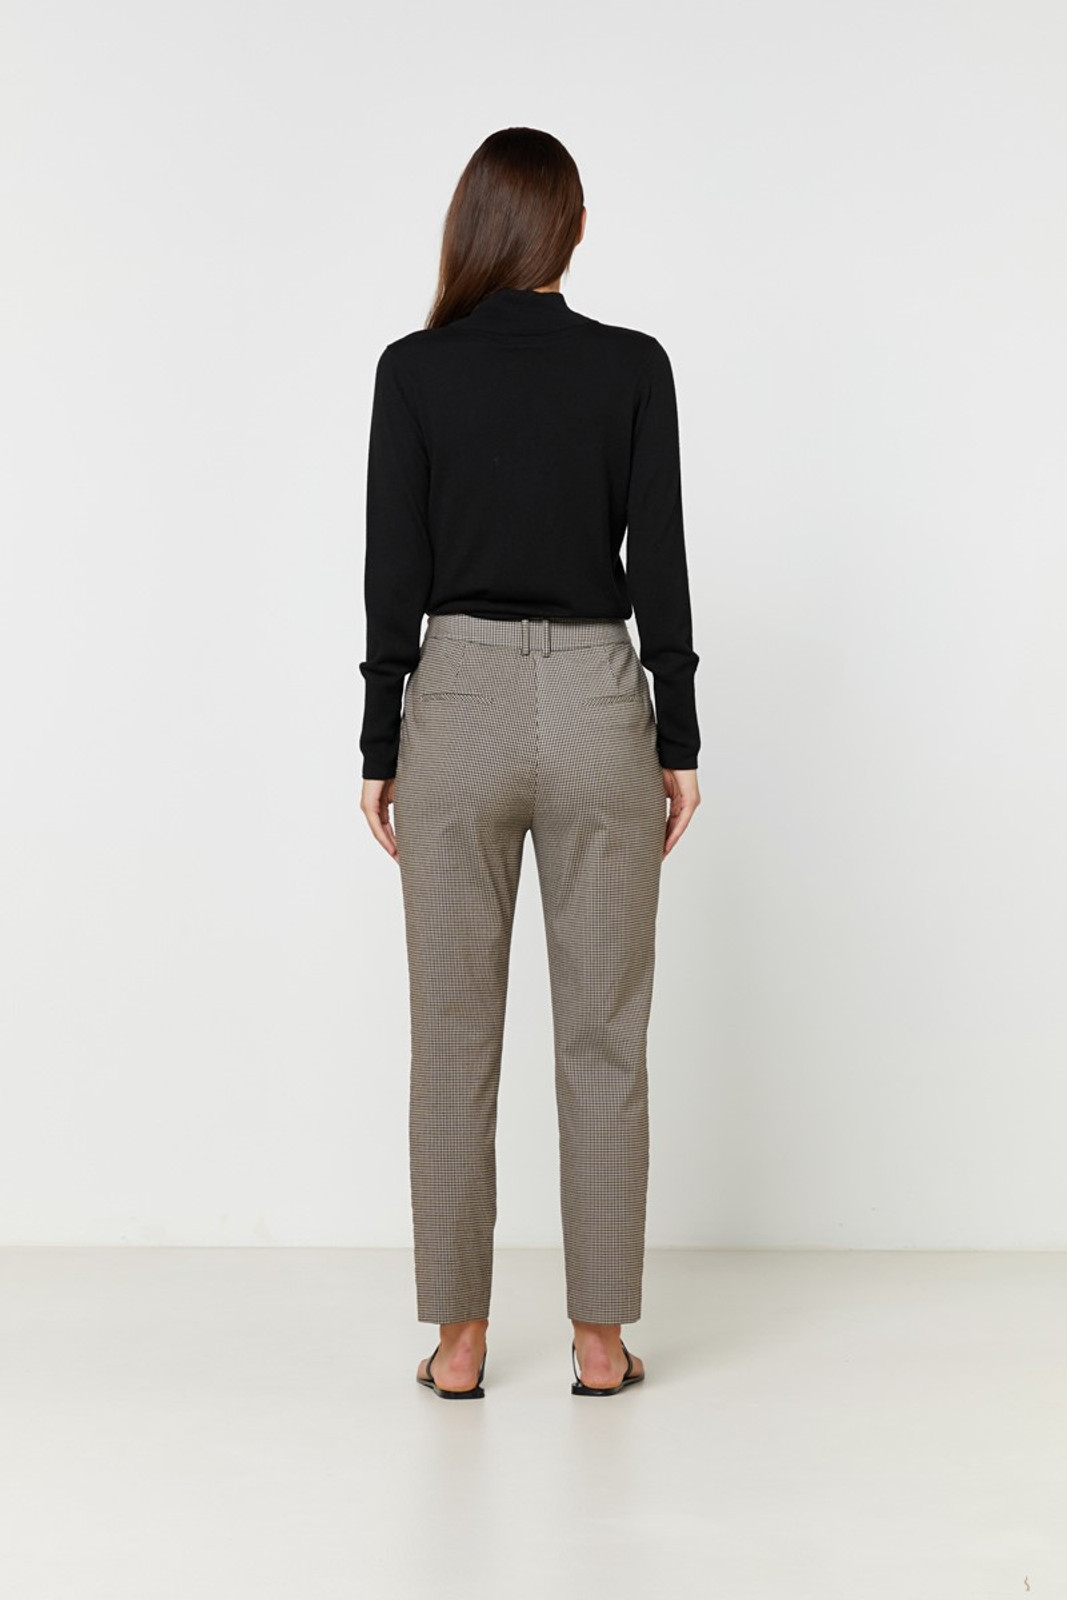 Elka Collective Henley Pant Multi  6